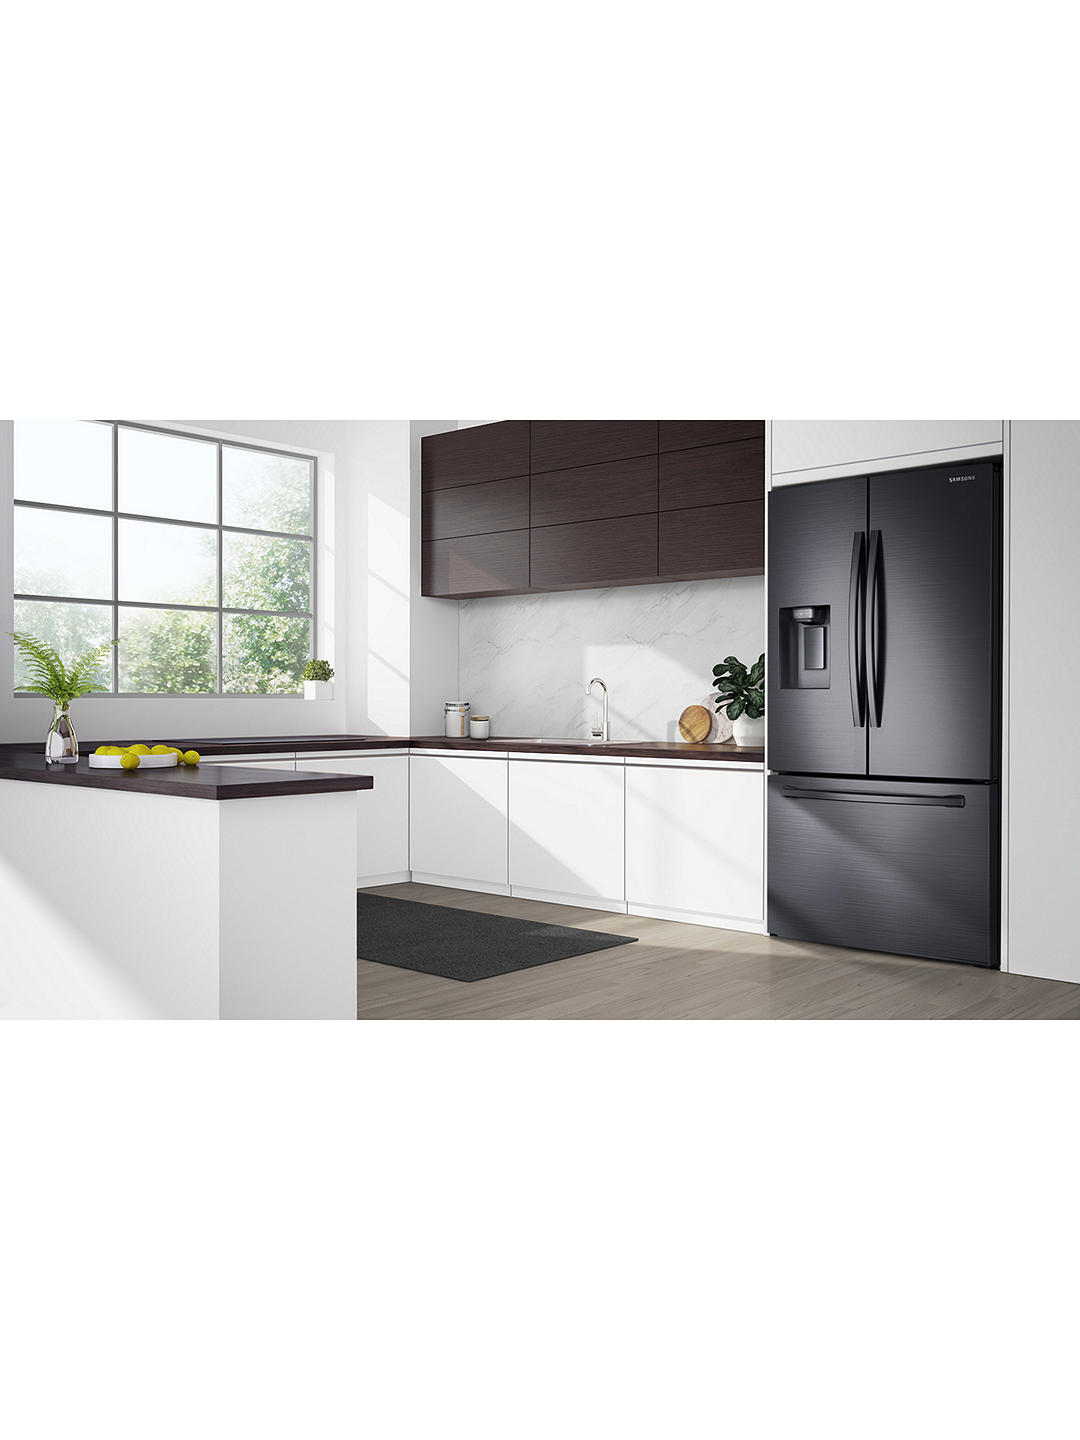 Buy Samsung RF23R62E3B1 American-Style Freestanding 75/25 Fridge Freezer, 91cm Wide, Stainless Black Online at johnlewis.com